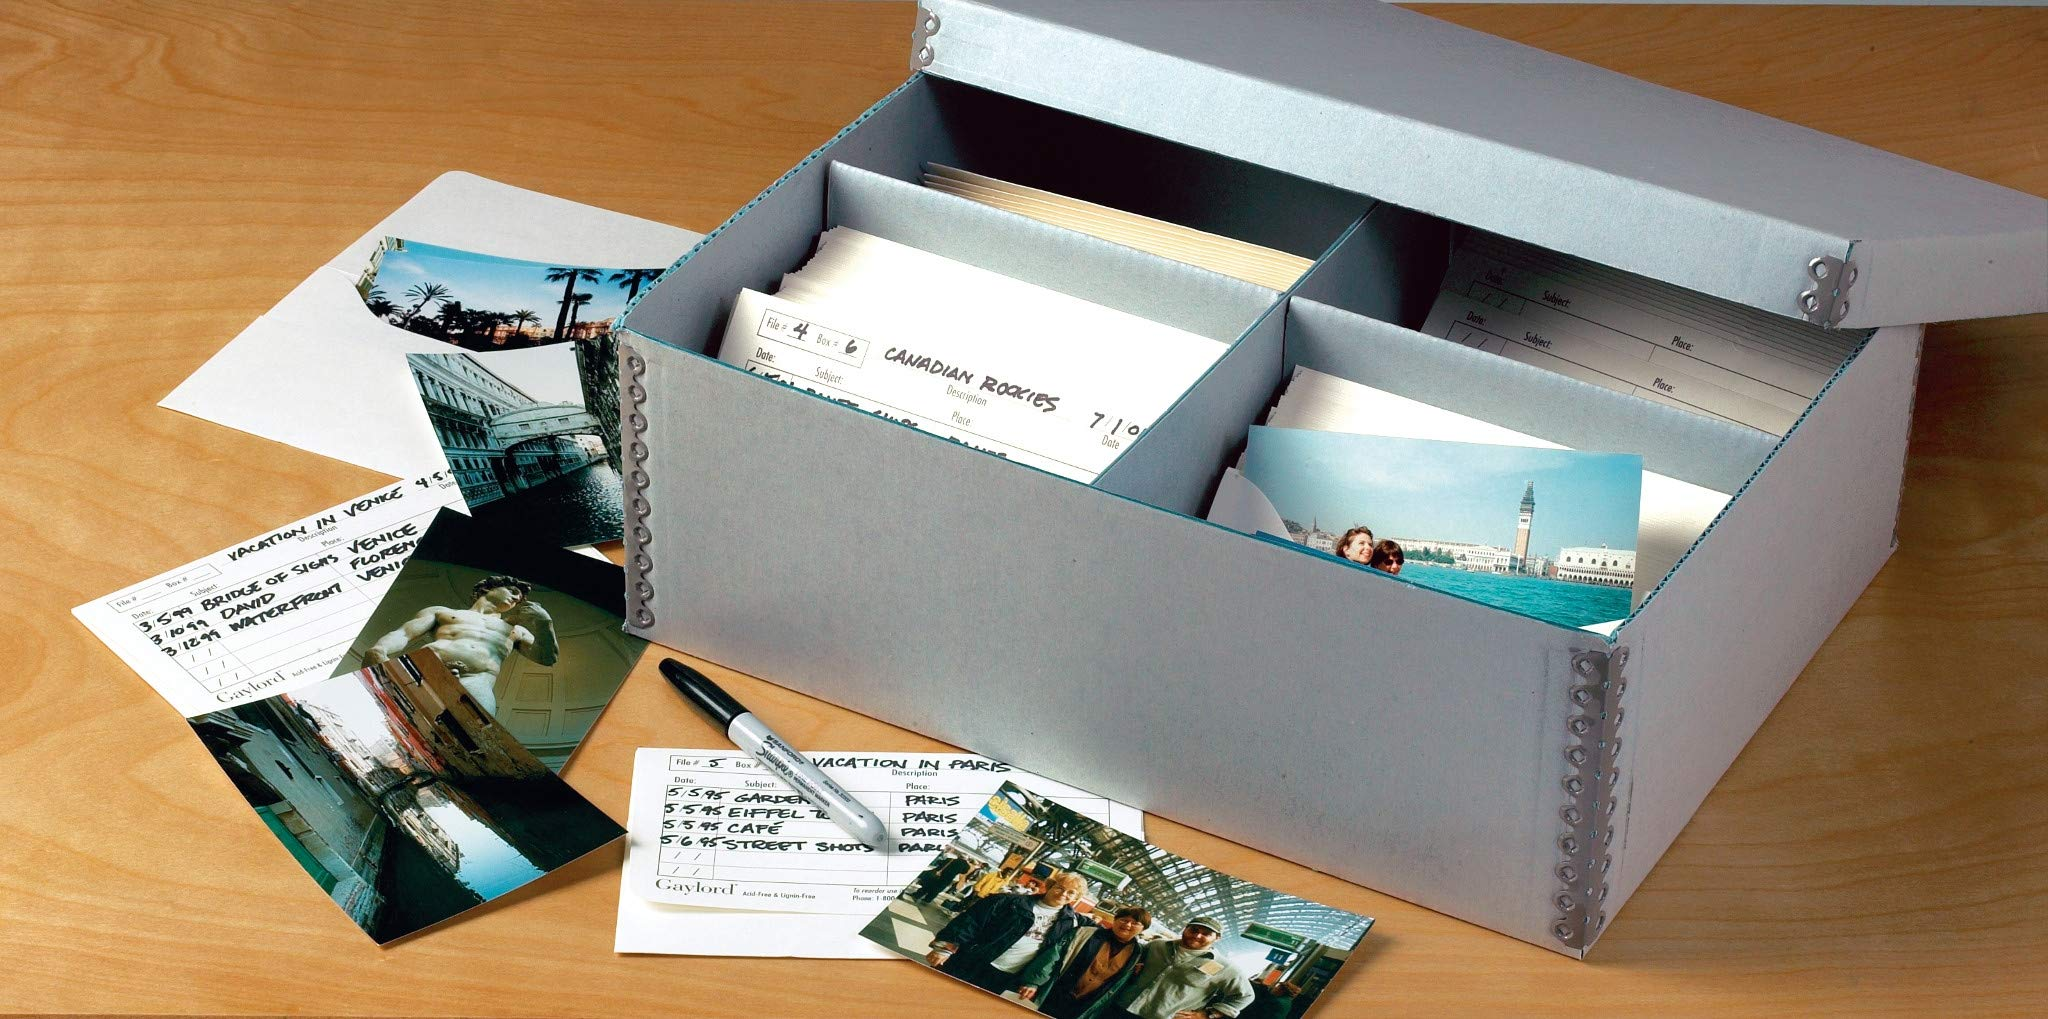 Gaylord Archival High-Capacity Photo Storage Kit